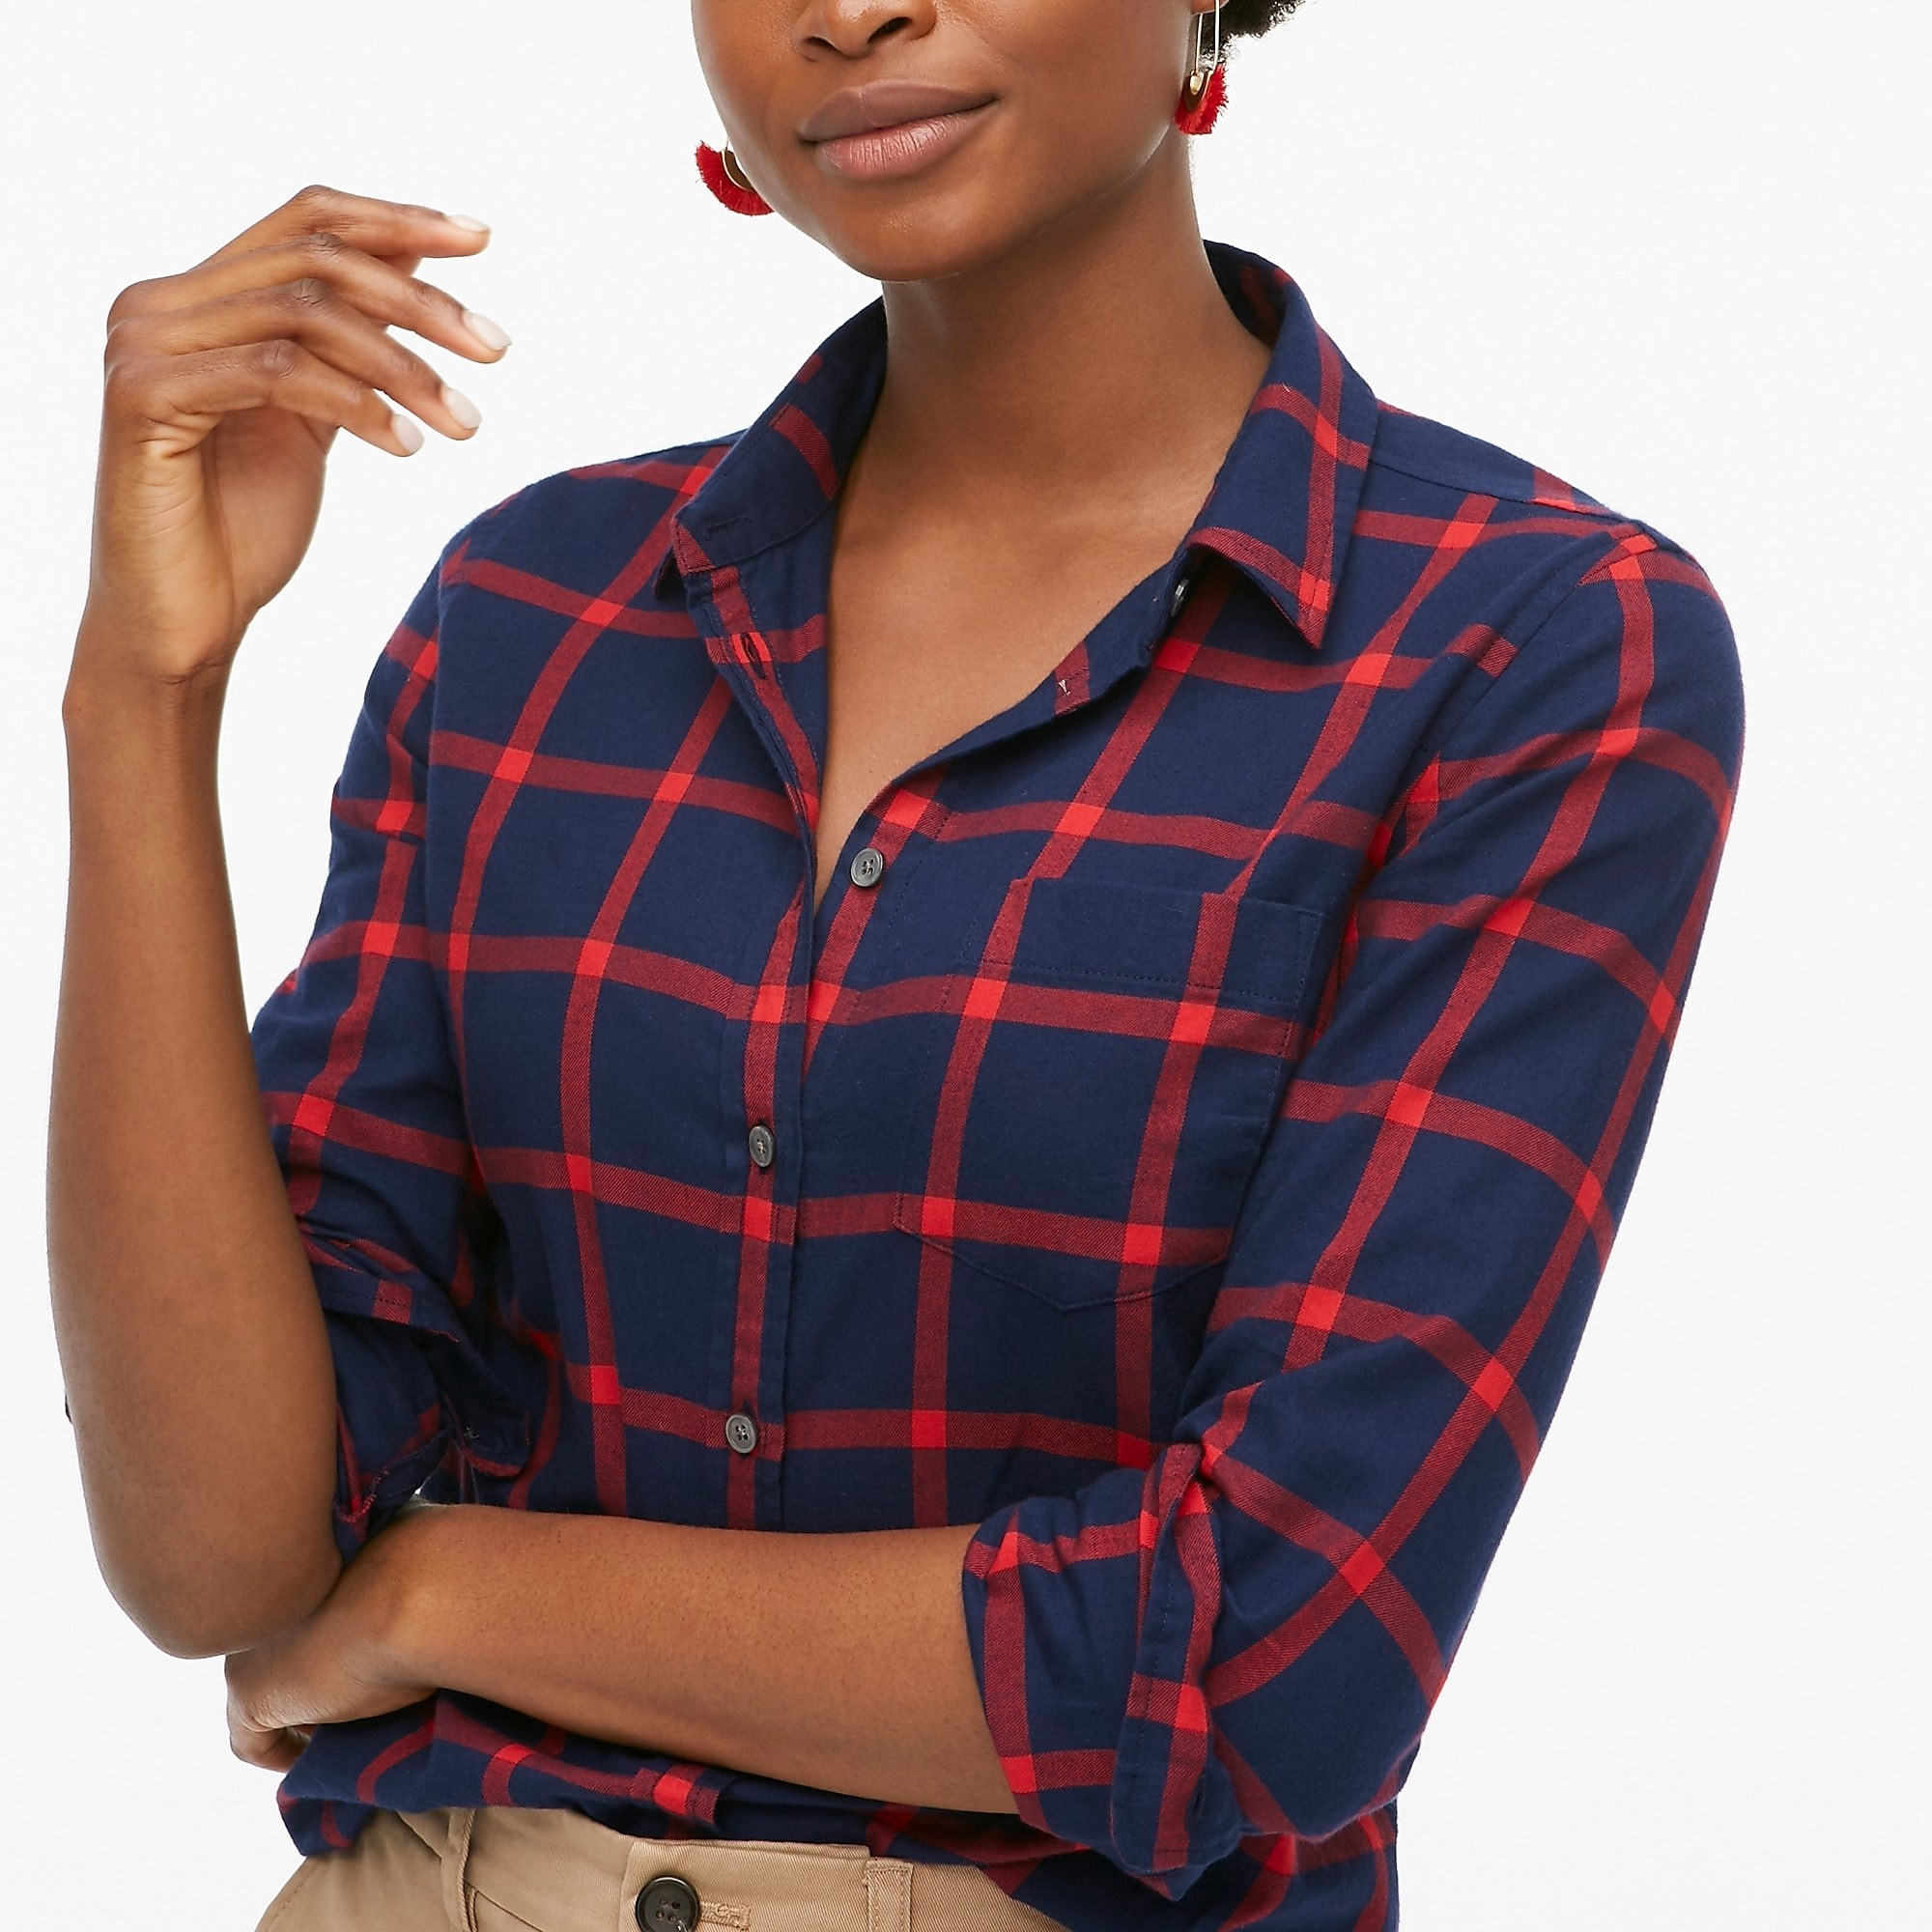 model wearing the red and blue plaid top